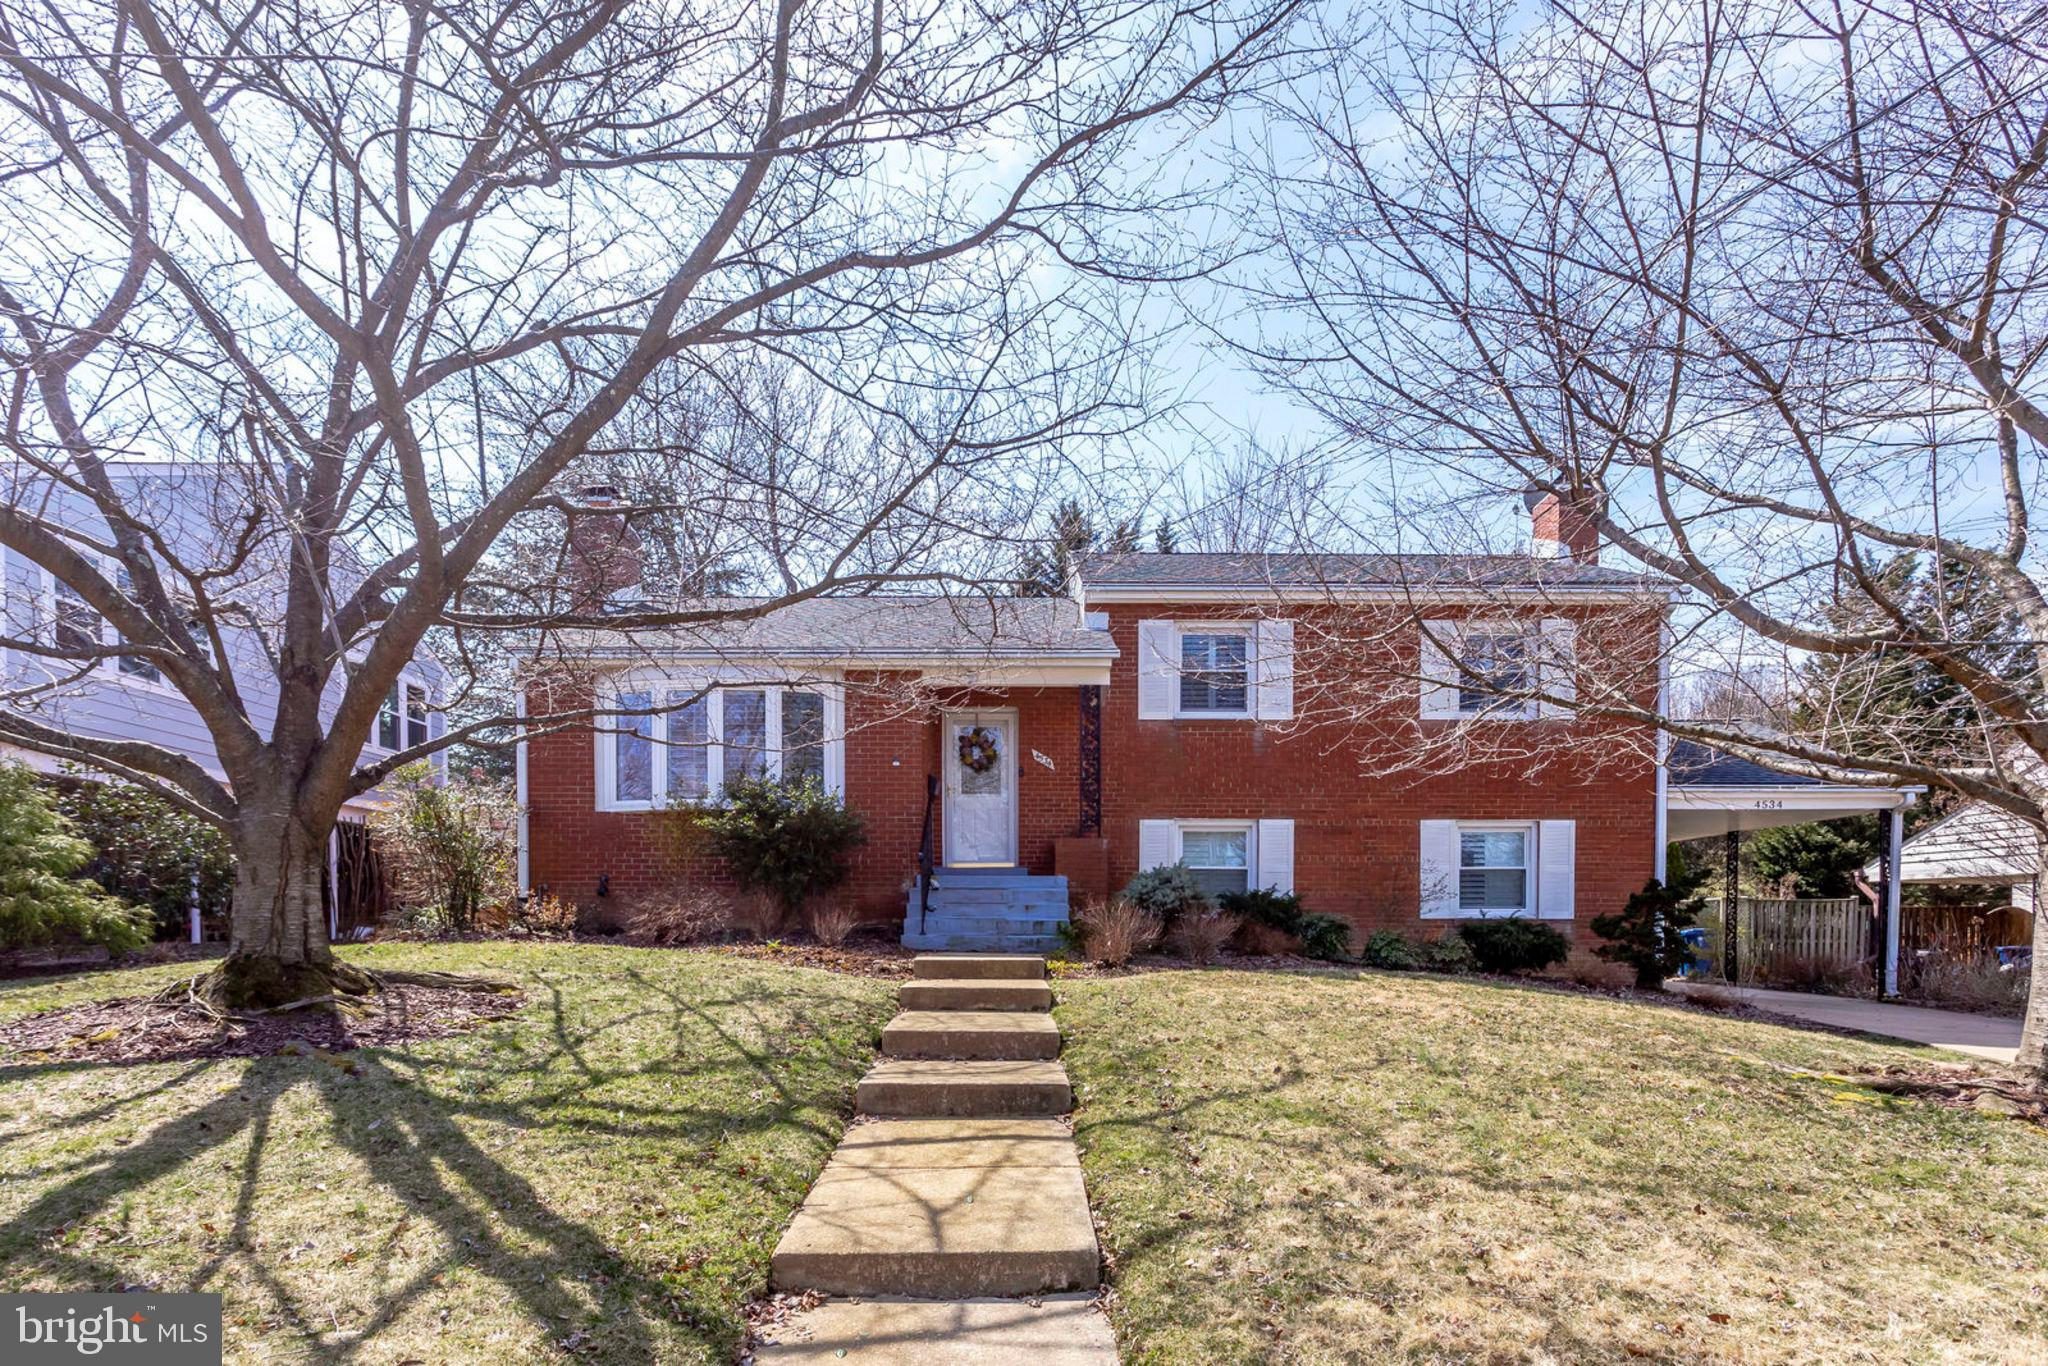 Just listed in sought after neighborhood of Varsity Park. Gorgeous 4 bedroom 3 full bath 4 level split home in the heart of Alexandria! Gleaming hardwood floors throughout the home. Updated kitchen and all 3 full bathrooms. Replaced roof and HVAC in 2014! Conveniently located less than a mile from 395, every commuters dream!Upper level 1 features 3 bedrooms. Master suite has plenty of closet space and a private bathroom. Master bathroom has shower/tub combo with separate vanities.Lower level 1 features family room with second brick faced gas fireplace. Separate laundry room with lots of cabinetry for added storage as well. Laundry room is walkout level to backyard. The fourth bedroom with fully updated bathroom on lowel level 1. Bathroom has roomy stand up corner shower.Main floor plan is open floor concept with the kitchen flowing into the dining/sitting room. Living room has lovely marble face gas fireplace. Kitchen features dark granite countertops that compliment the white cabinetry. Additional bar added seating space. Door to the kitchen leads to your new backyard oasis. Backyard features a 2 level deck, gazebo, and built in porch swing, perfect for outdoor entertaining.Basement level has finished rec room. Plenty of storage space throughout the home.